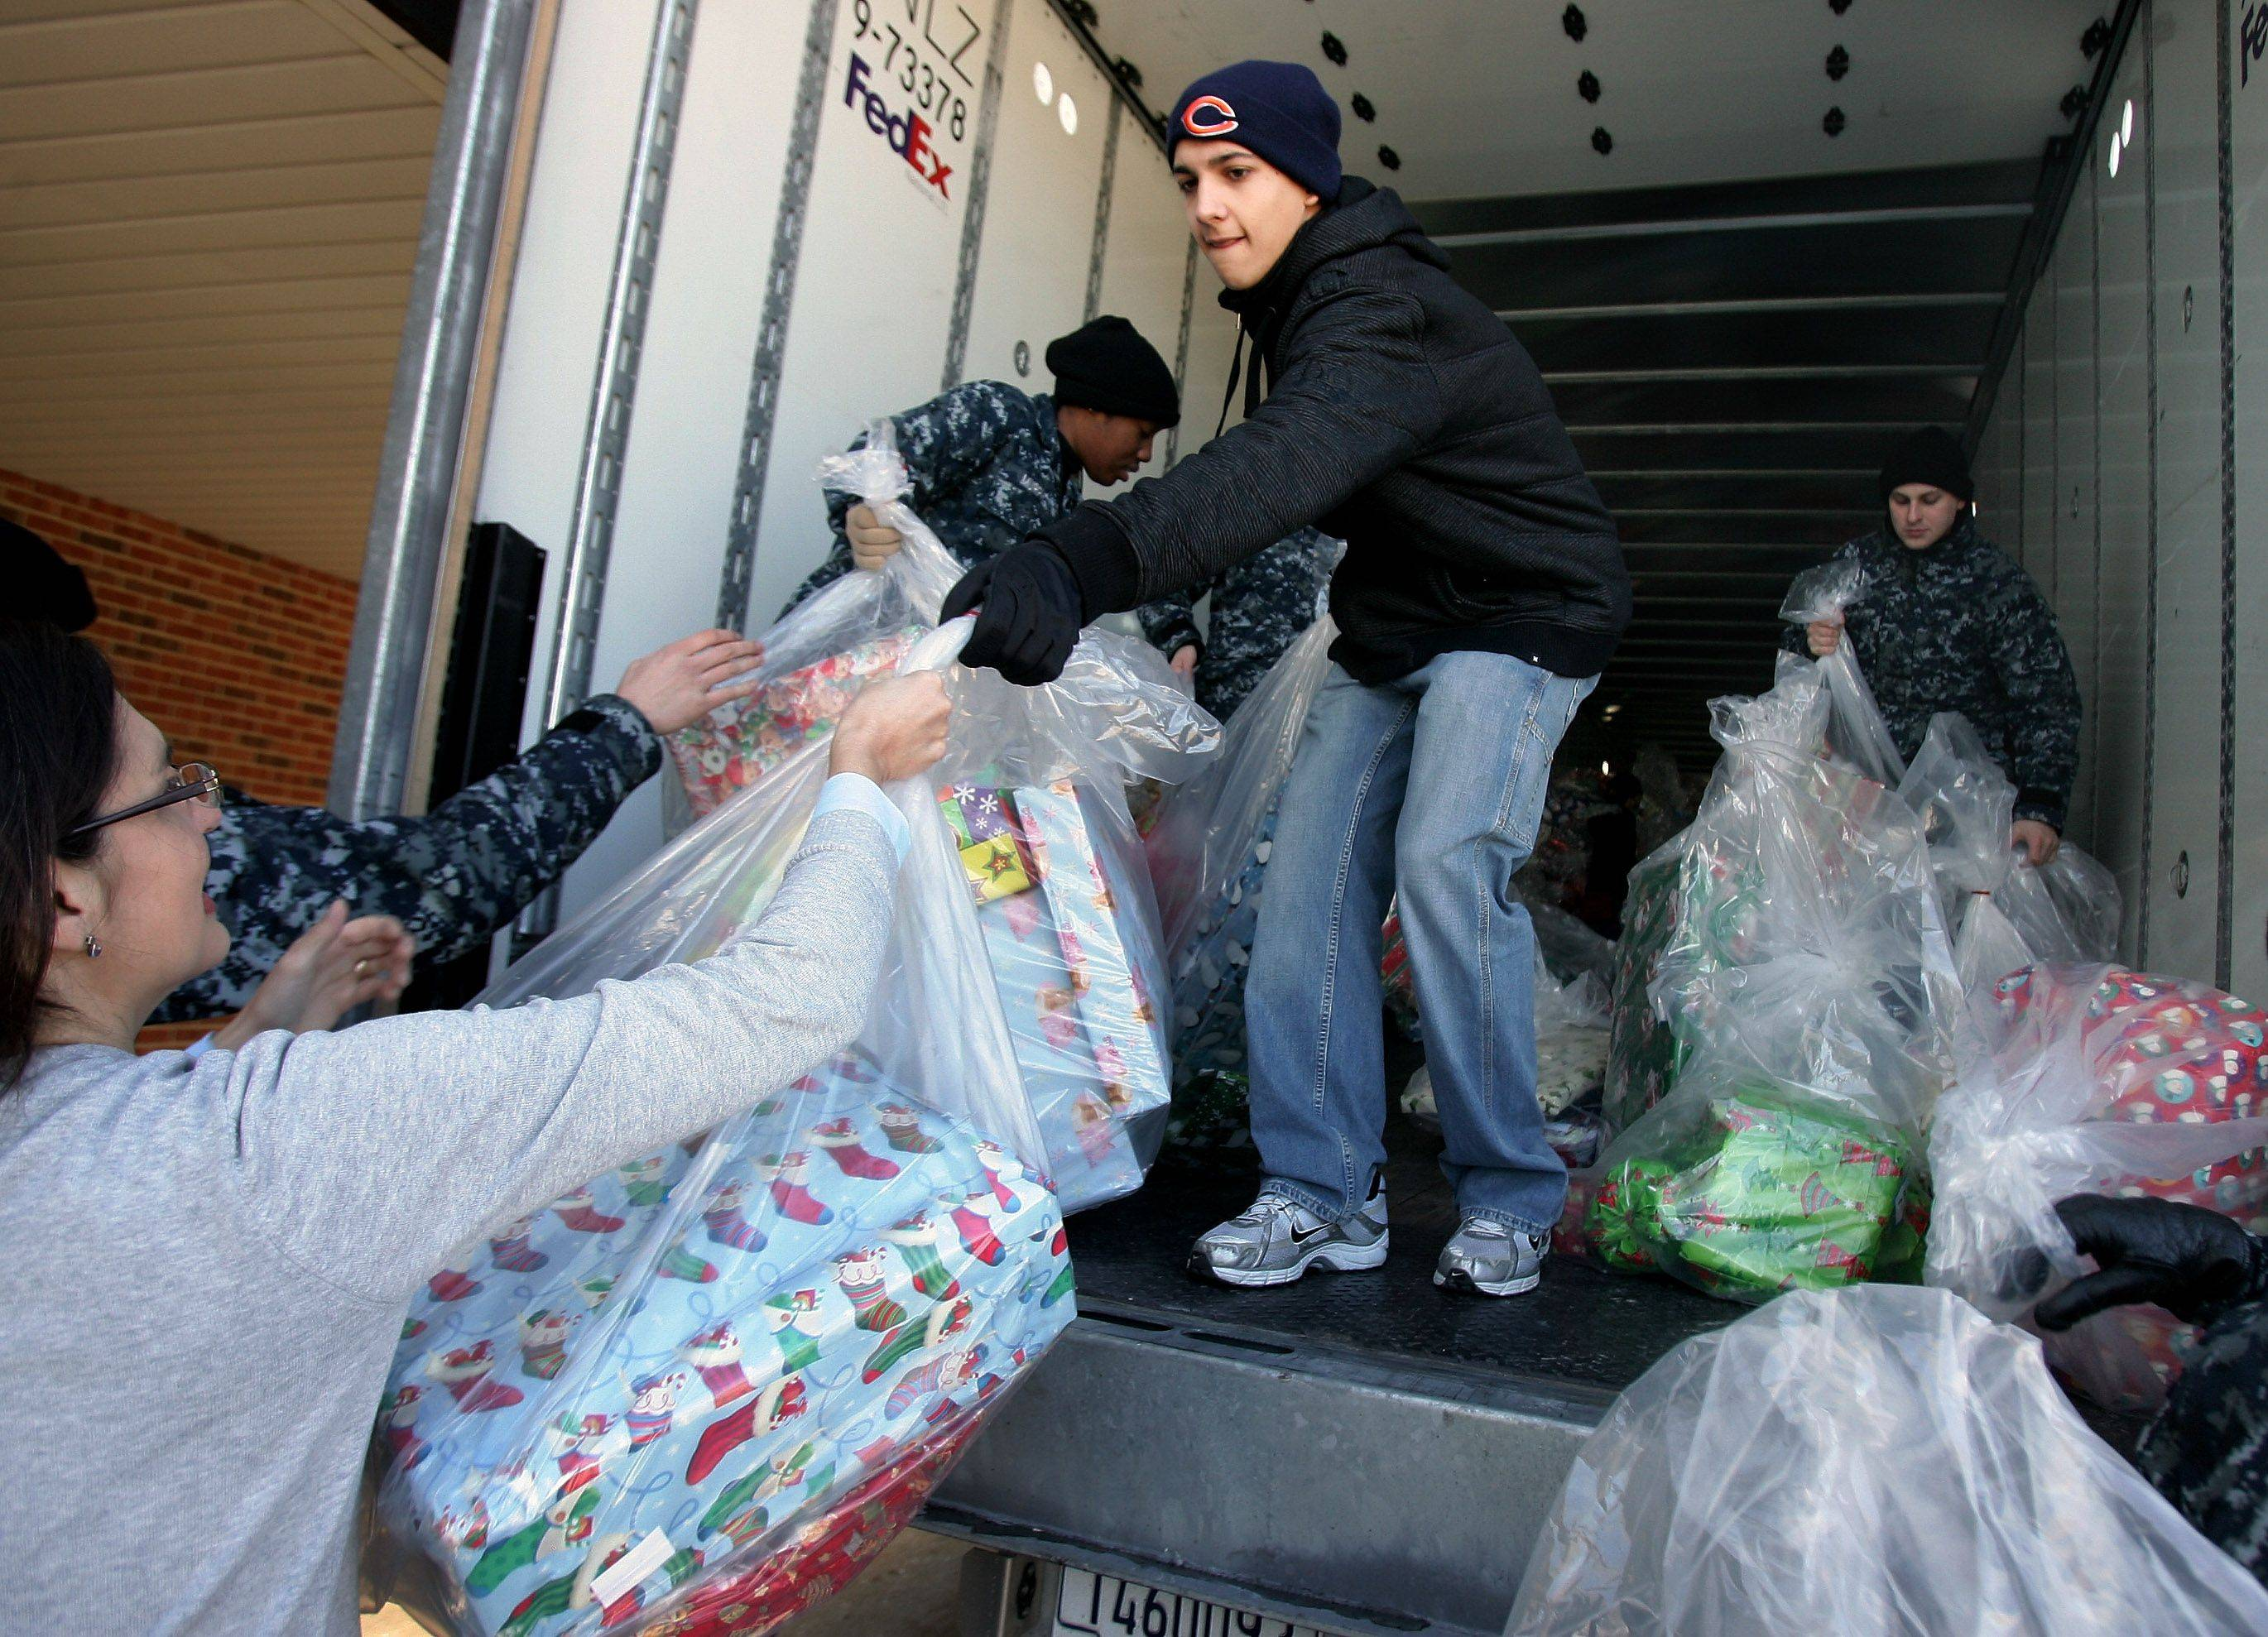 Eric Eiler, with the Stevenson High School National Honor Society, unloads toys that the school collected this past week as volunteers at Catholic Charities Lake County collect, sort, and distribute toys and clothes Wednesday at a storage facility in Waukegan. Catholic Charities hopes to deliver gifts to over 12,000 individuals for the holiday season. Sailors from Great Lakes Naval Base helped unload the gifts.